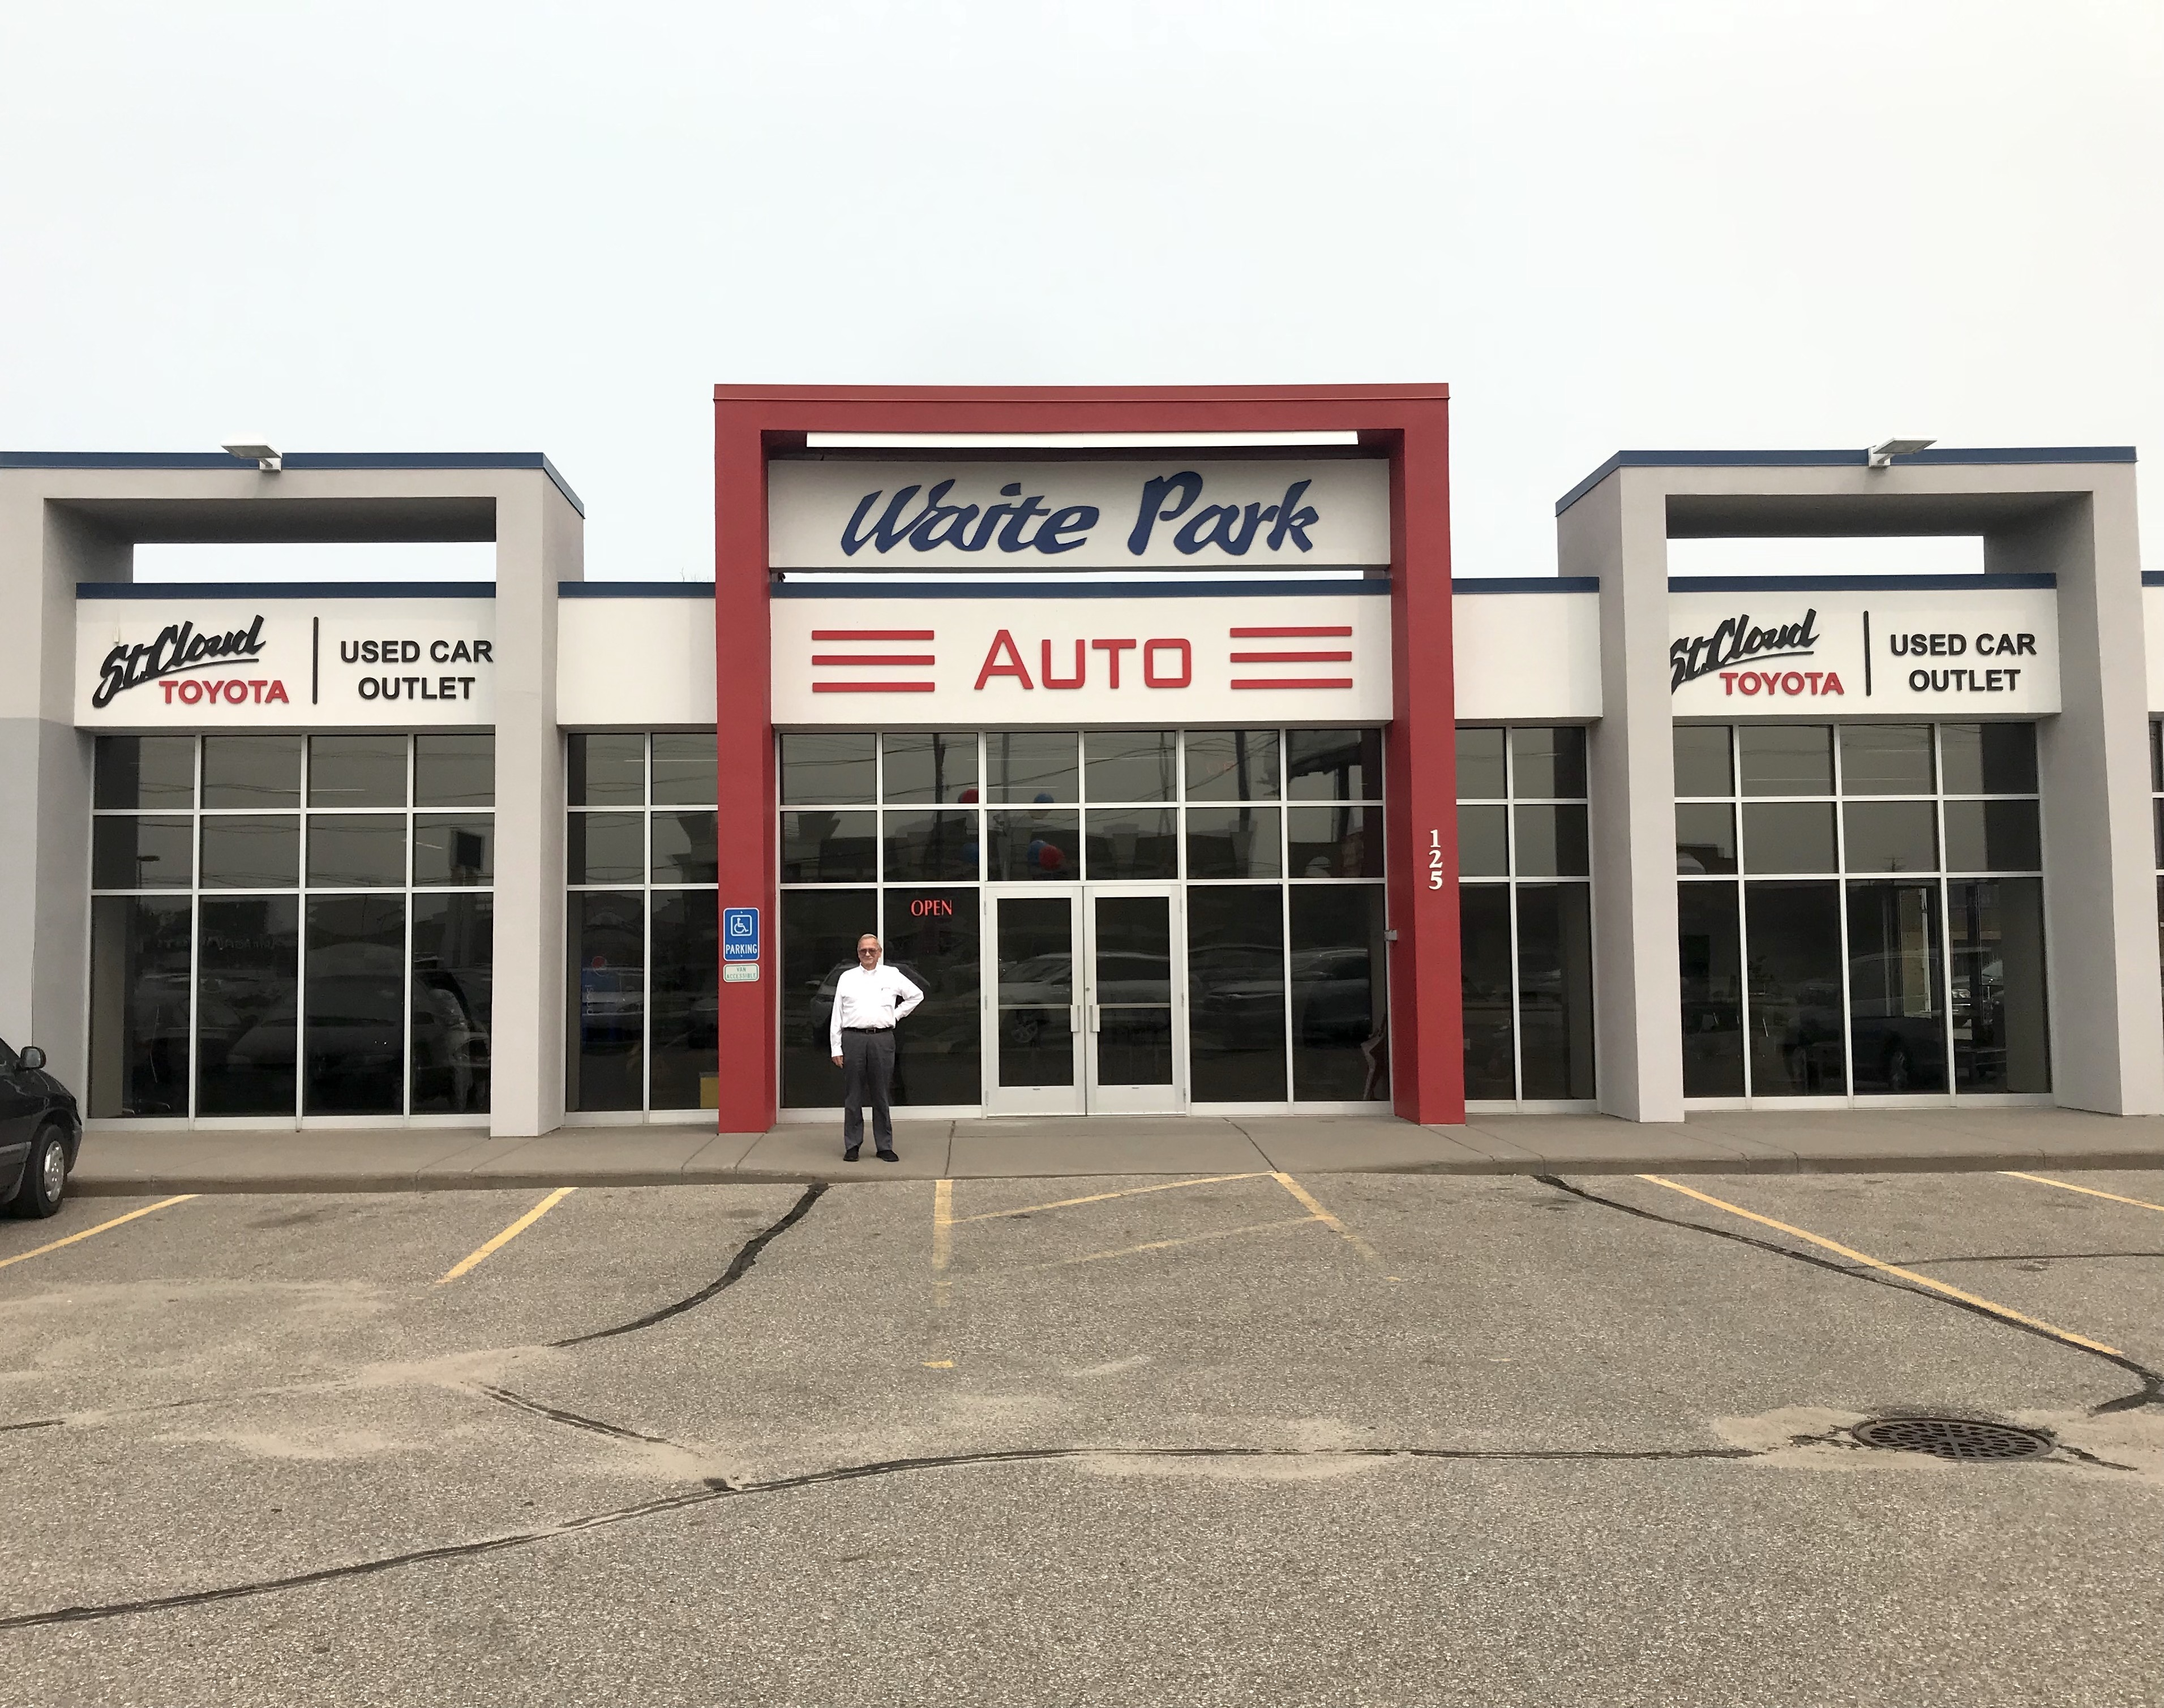 About Waite Park Auto And Sport